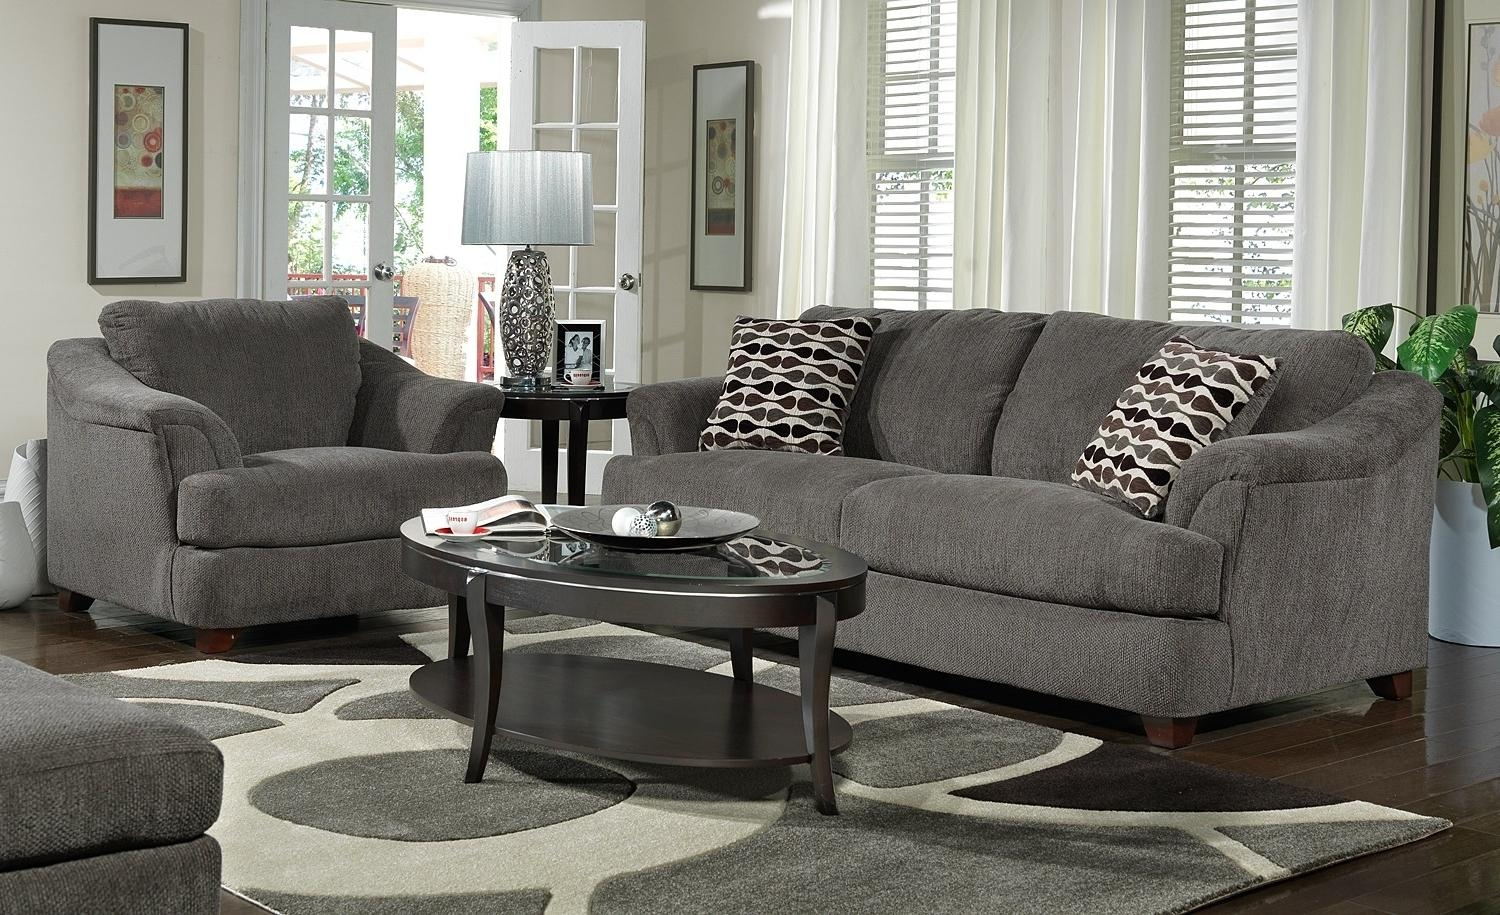 Grey Furniture Living Room Within Gray Sofas For Living Room (Image 16 of 20)